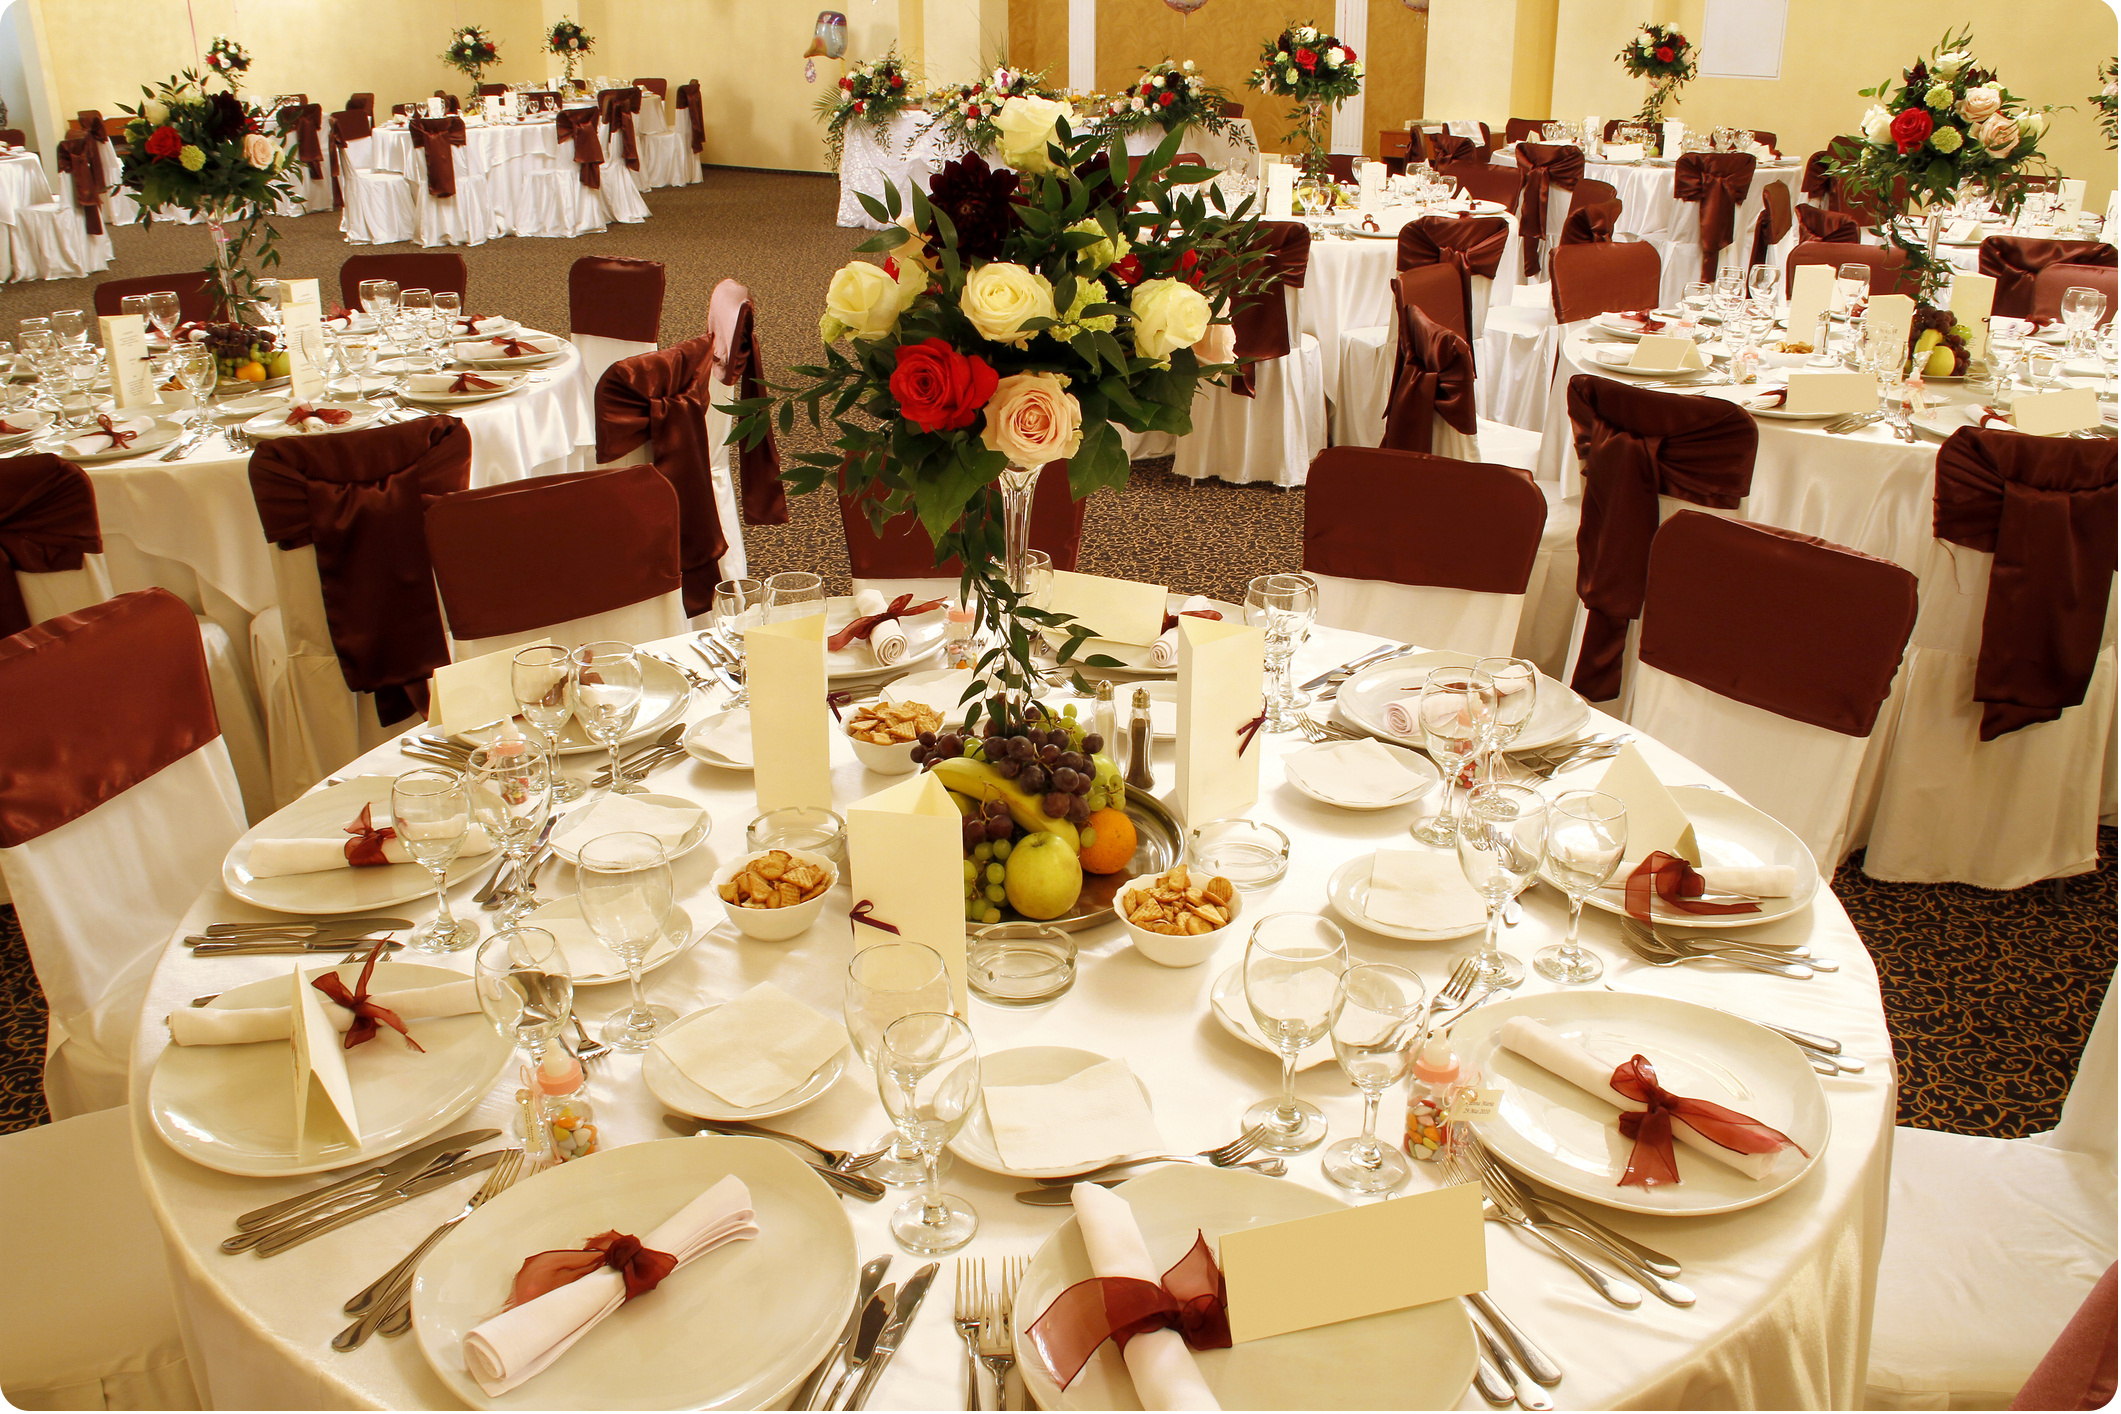 Wedding party decoration ideas wedding table decoration for Wedding banquet decorations